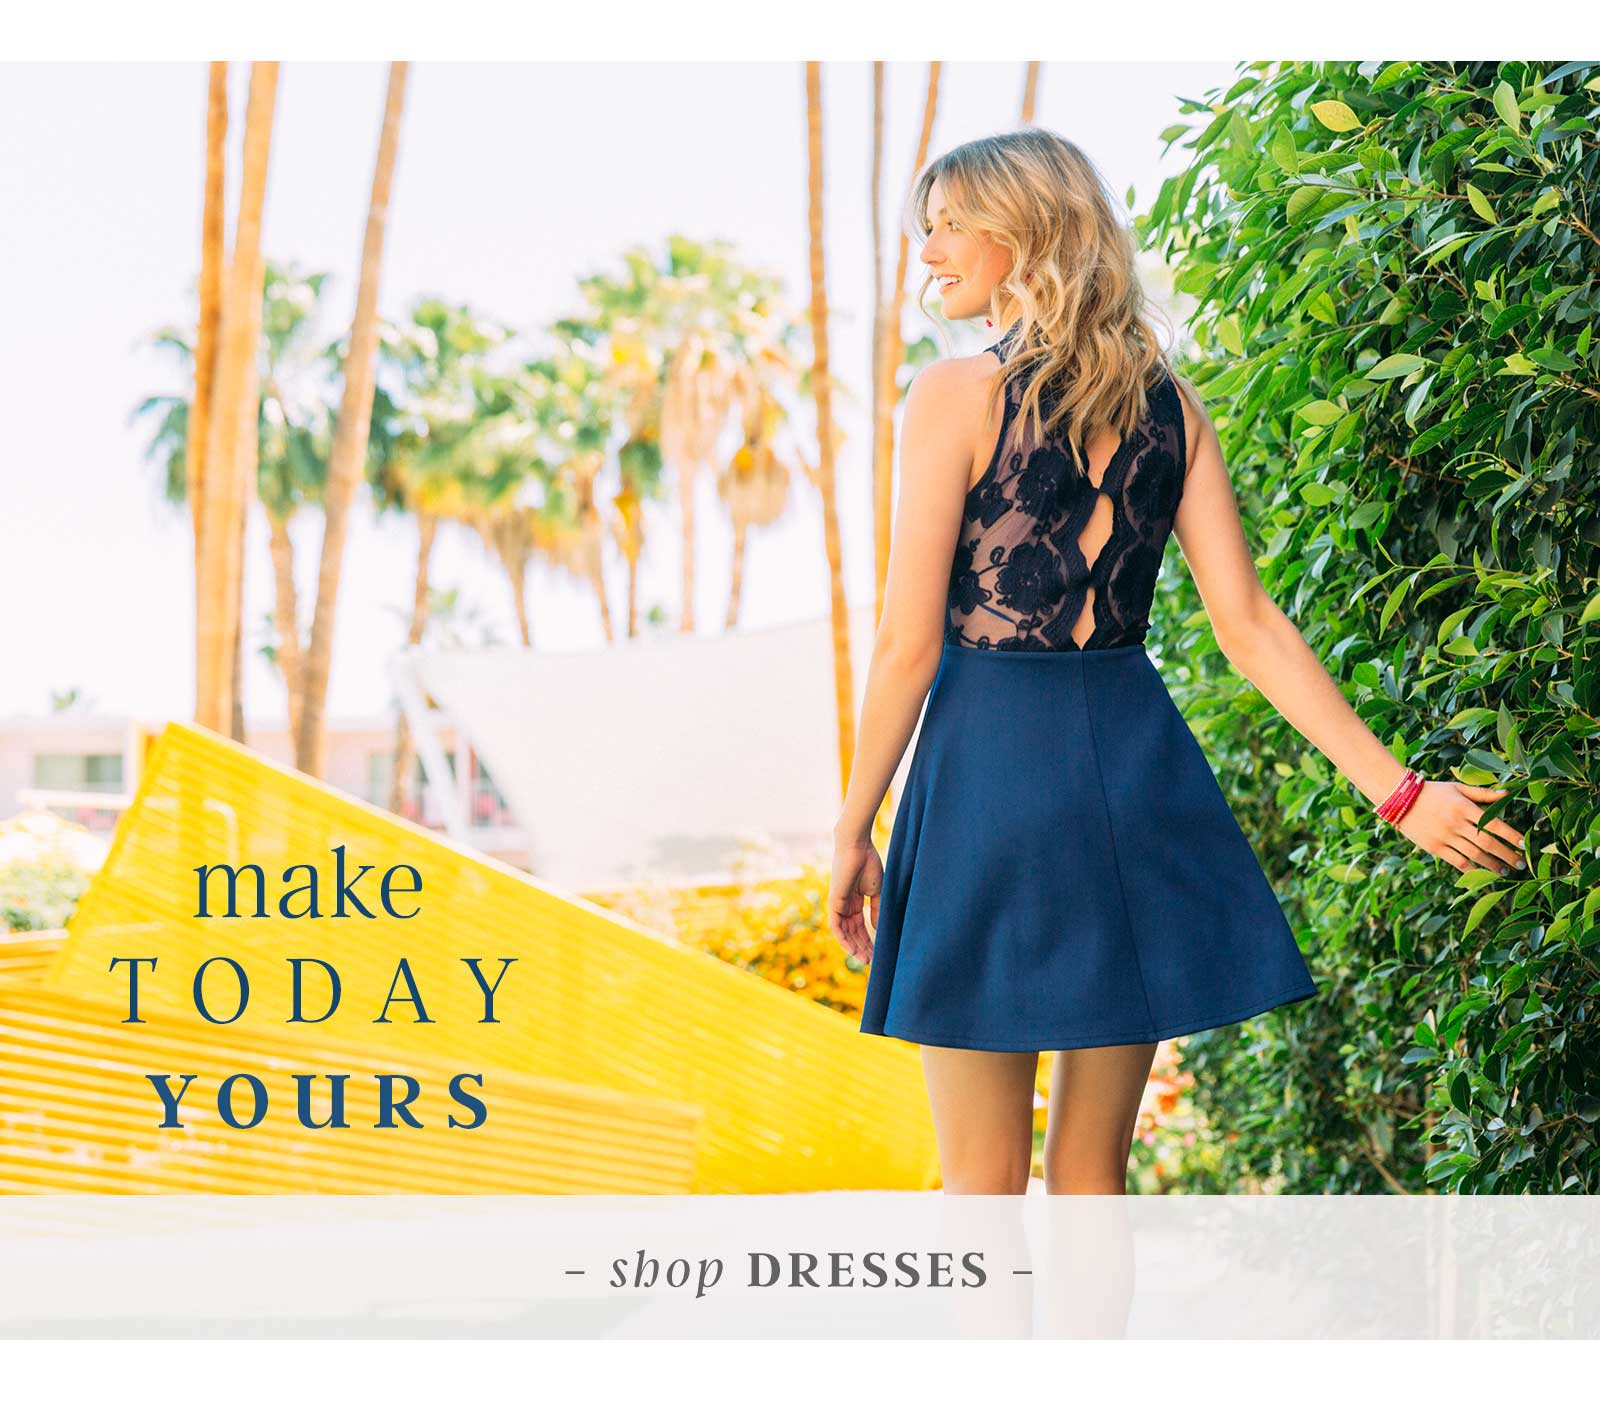 Make Today Yours - Shop Dresses